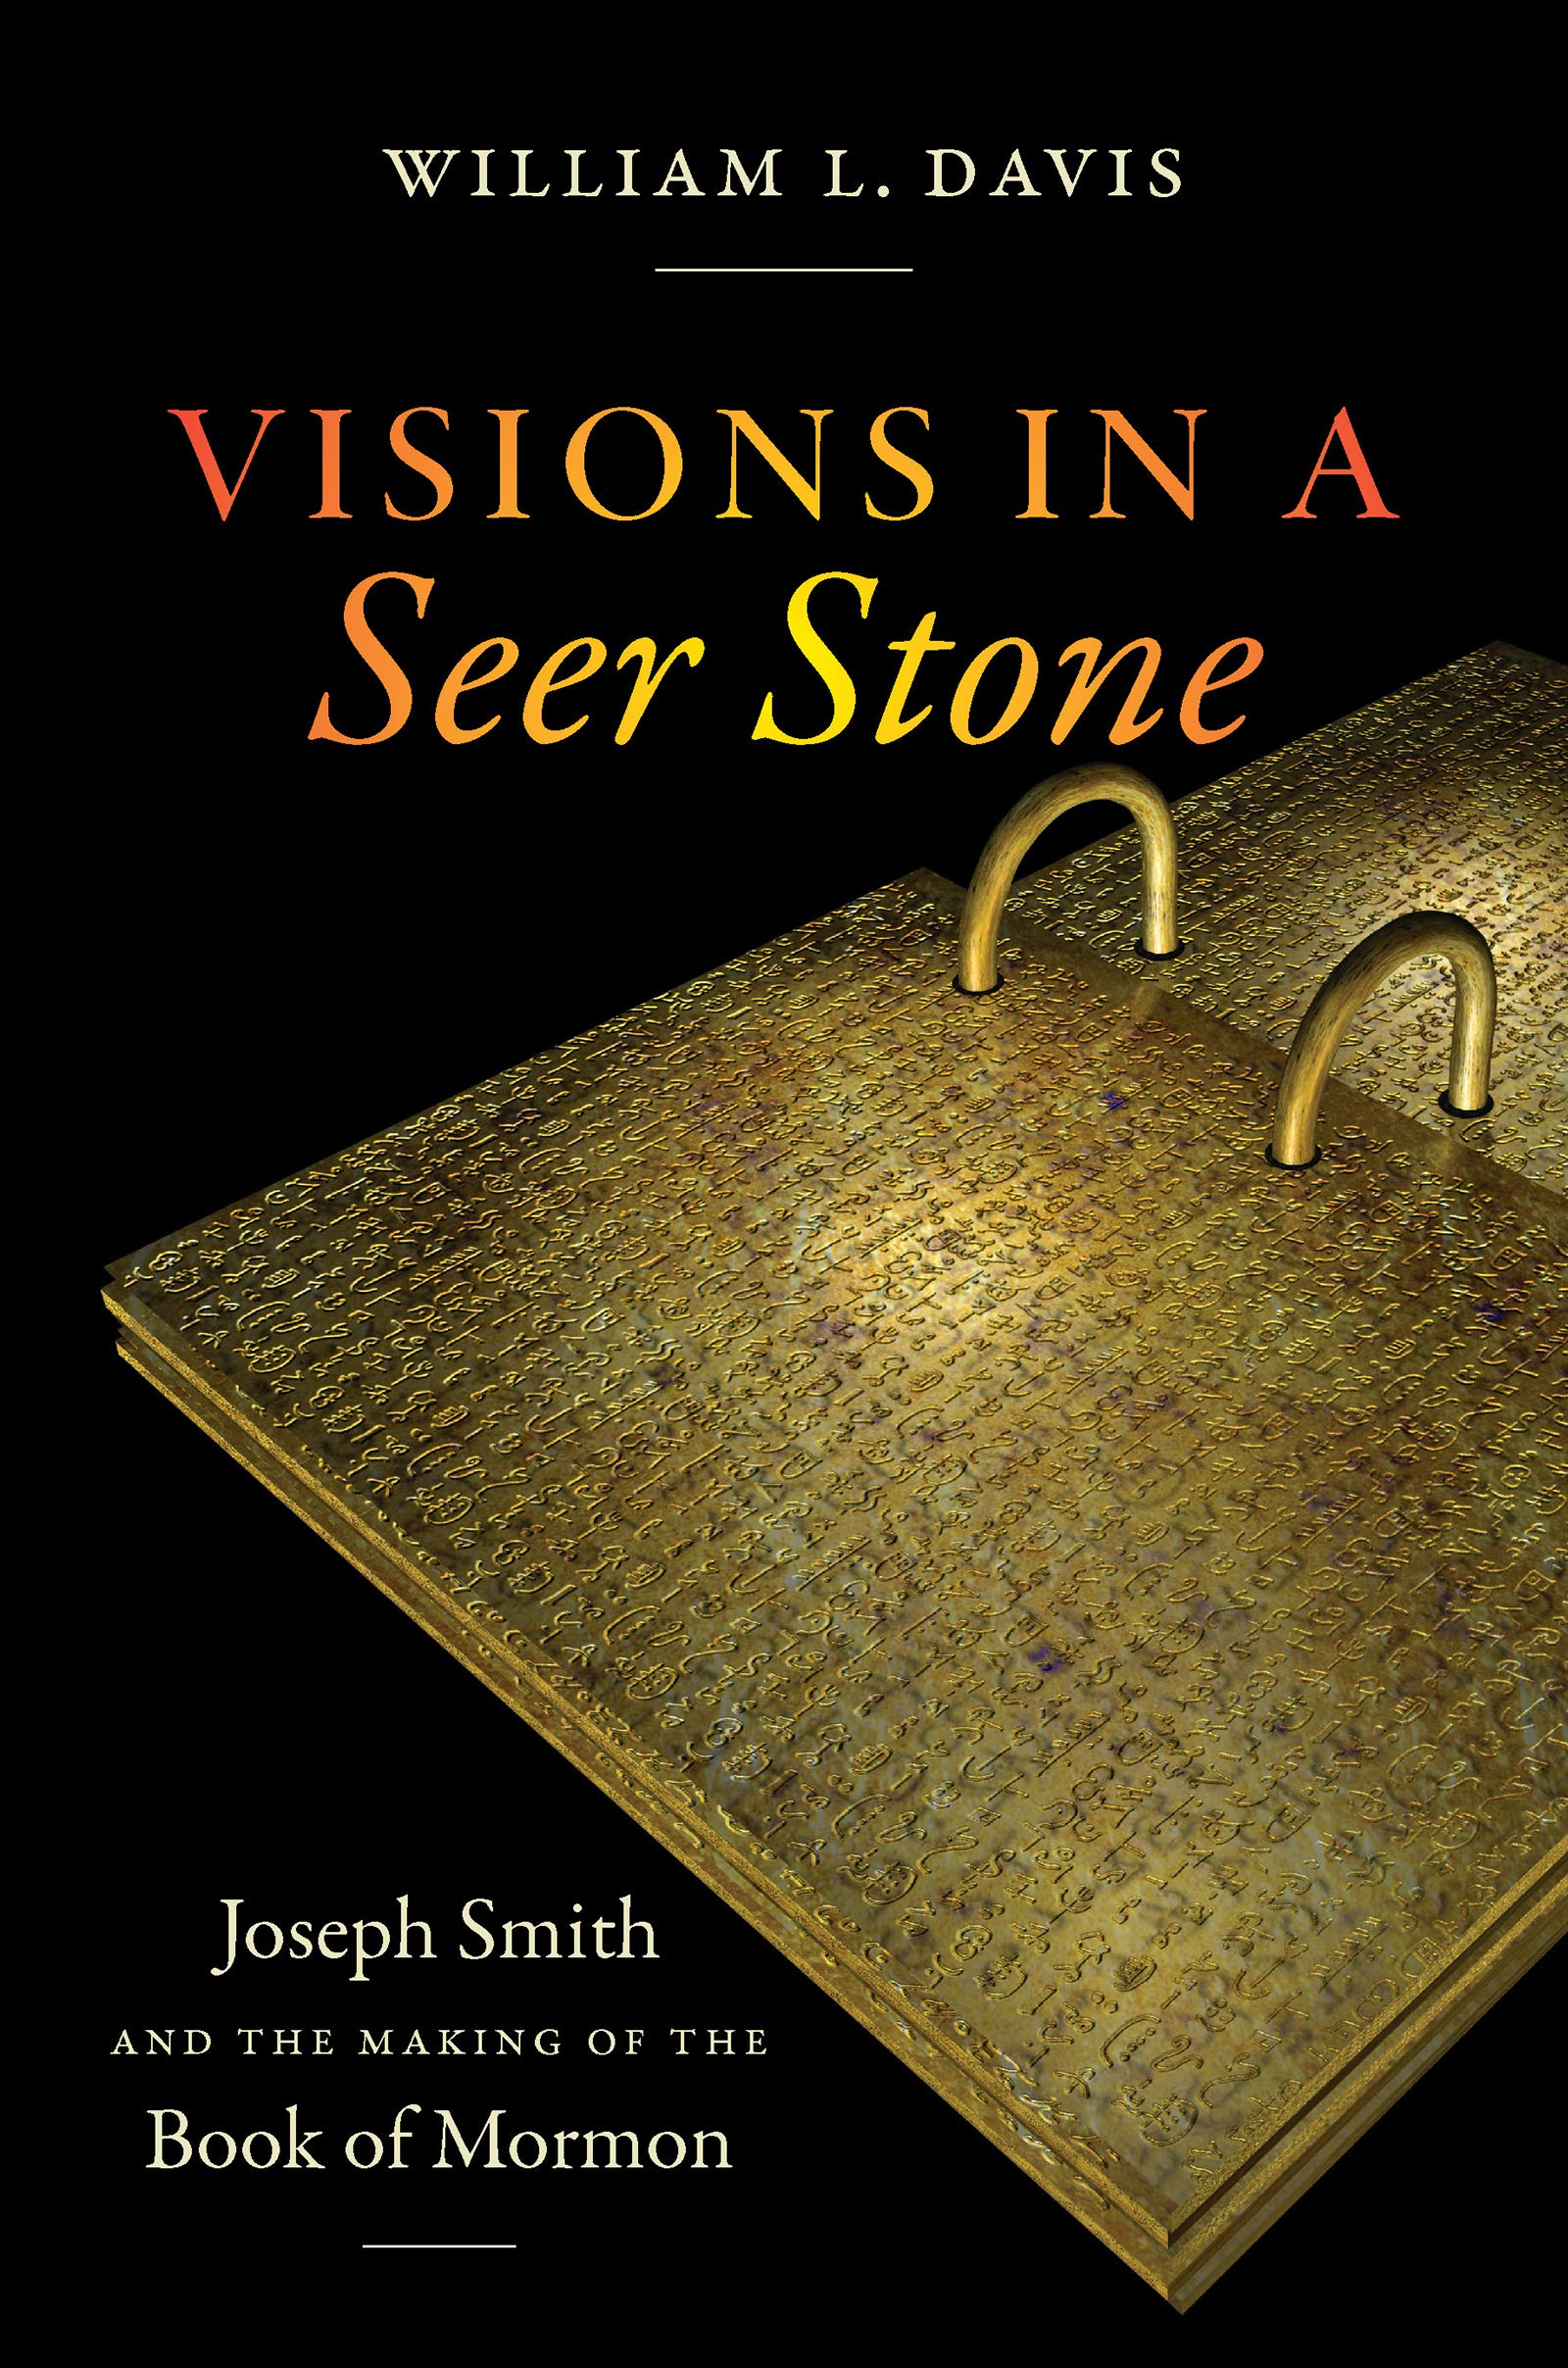 Cover, Vision in a Seer Stone